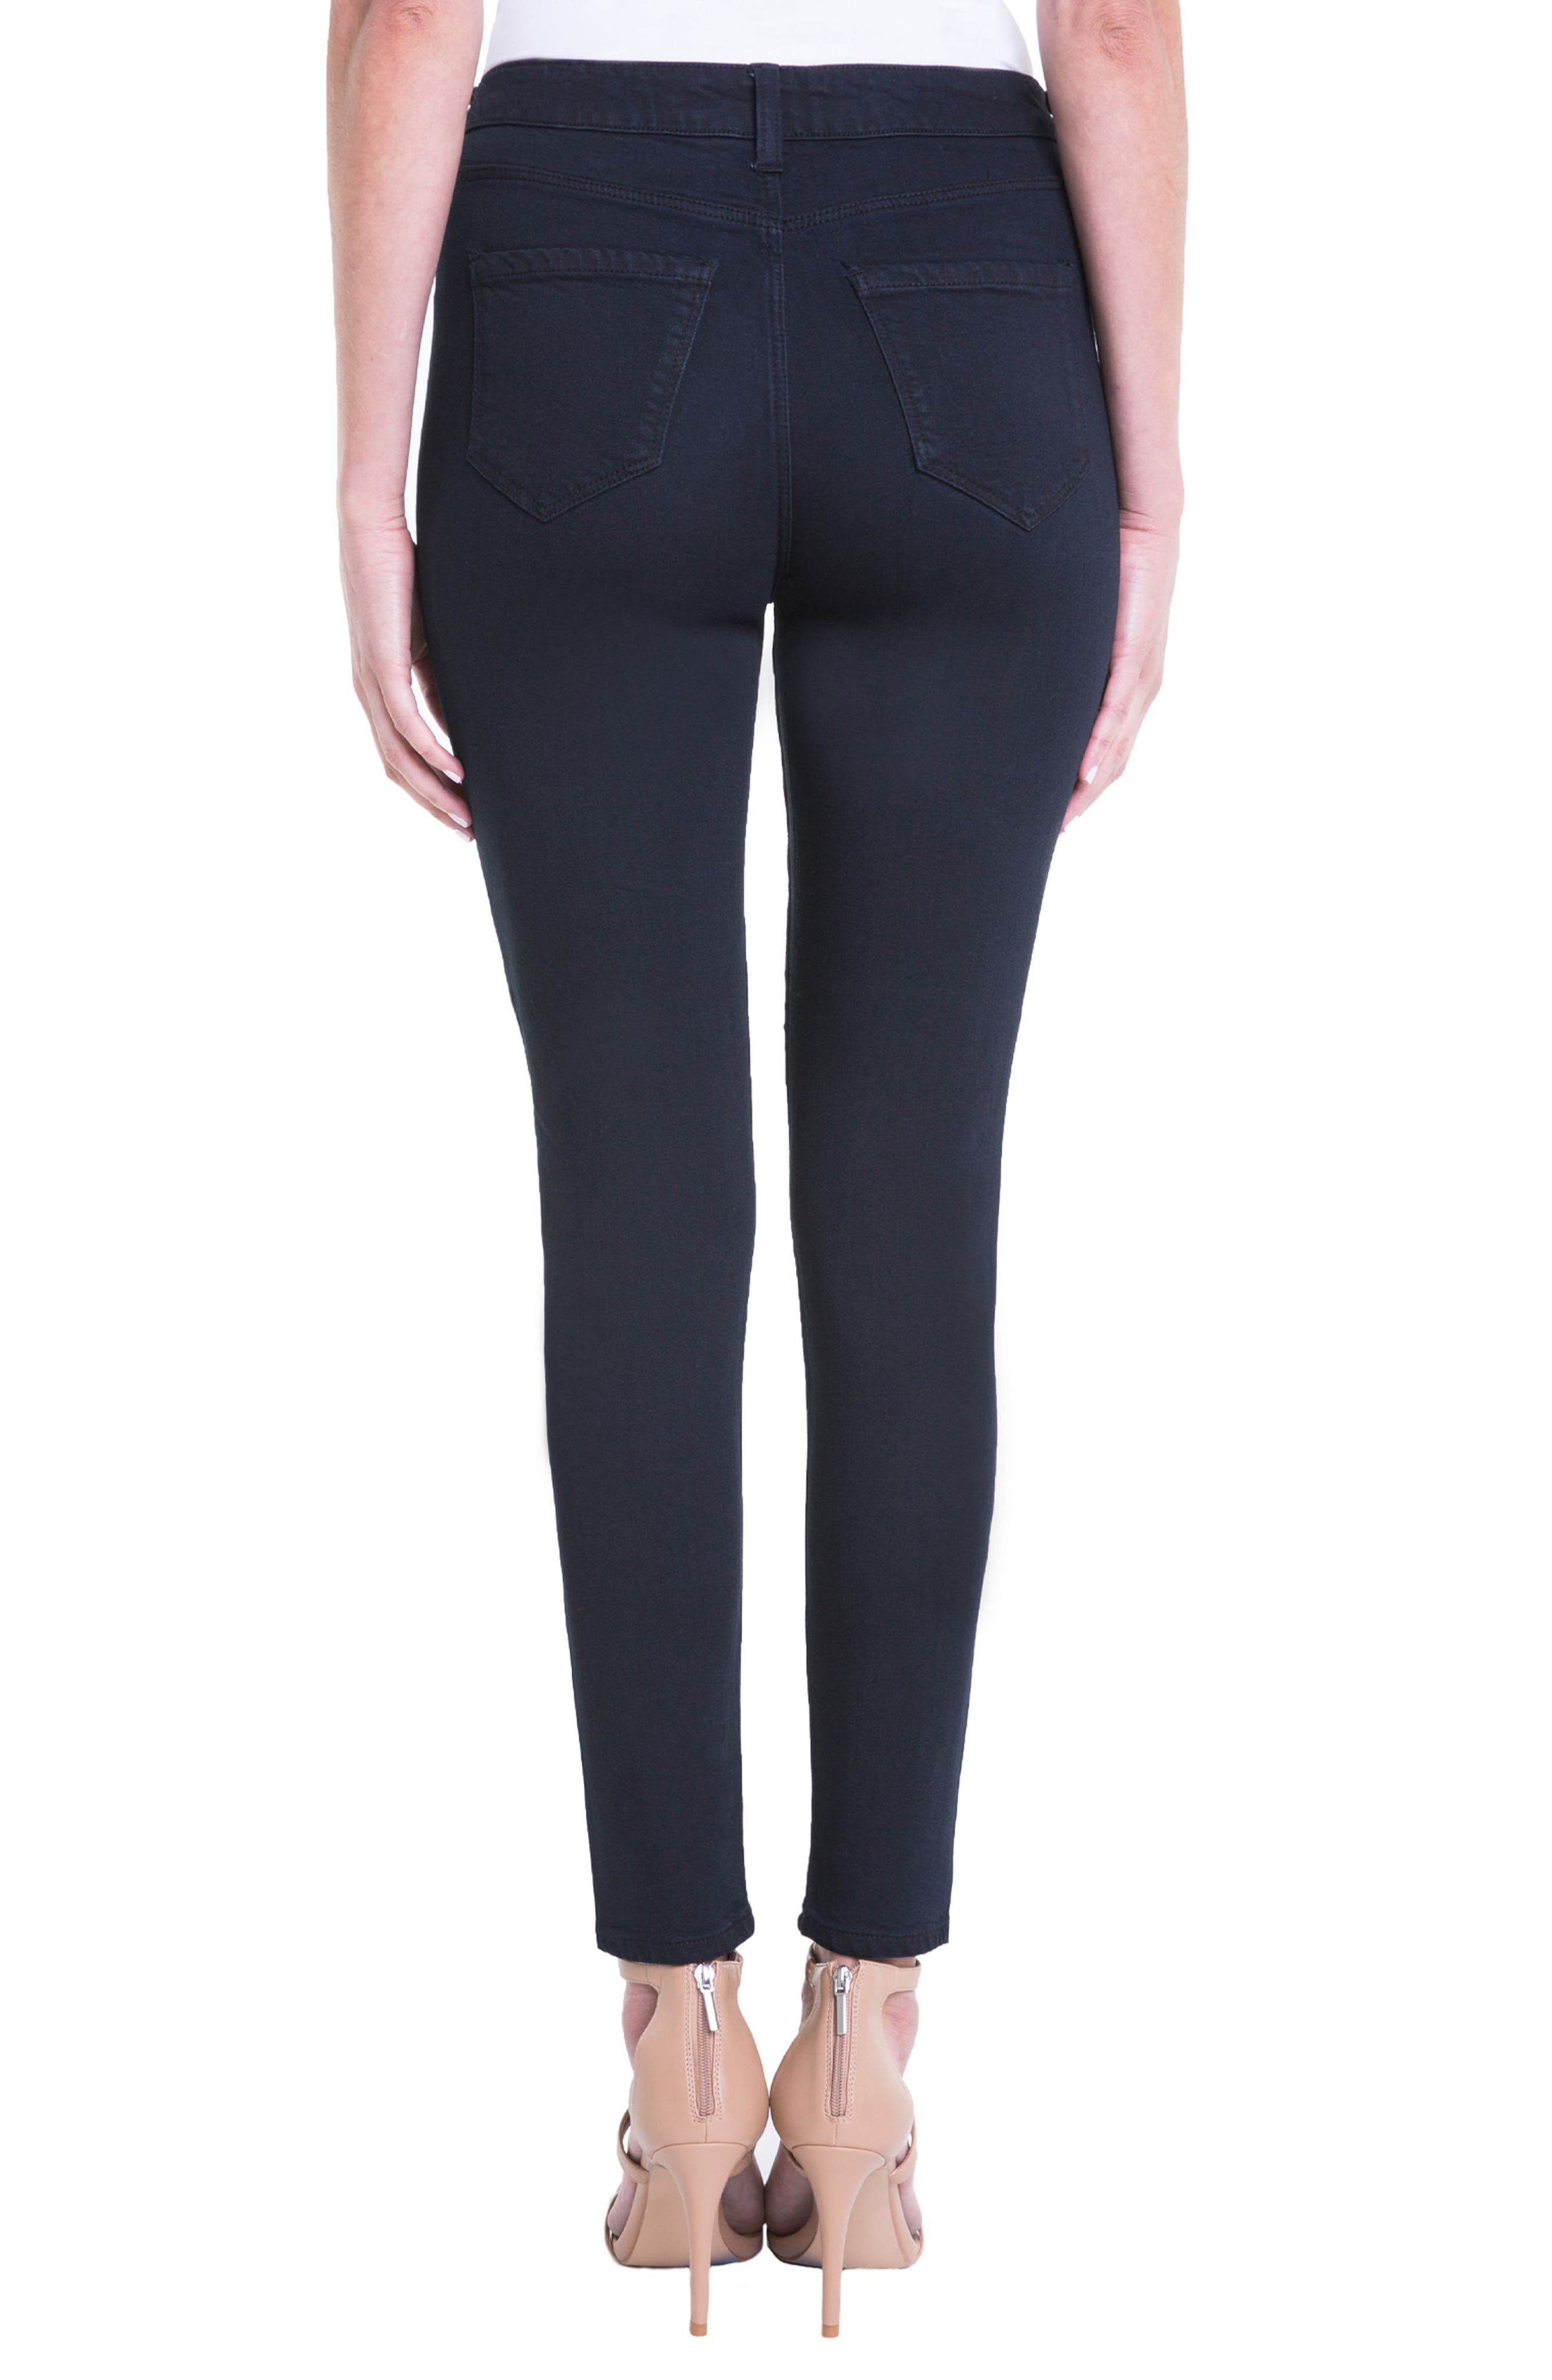 Jeans Company Bridget High Waist Skinny Jeans,                             Alternate thumbnail 6, color,